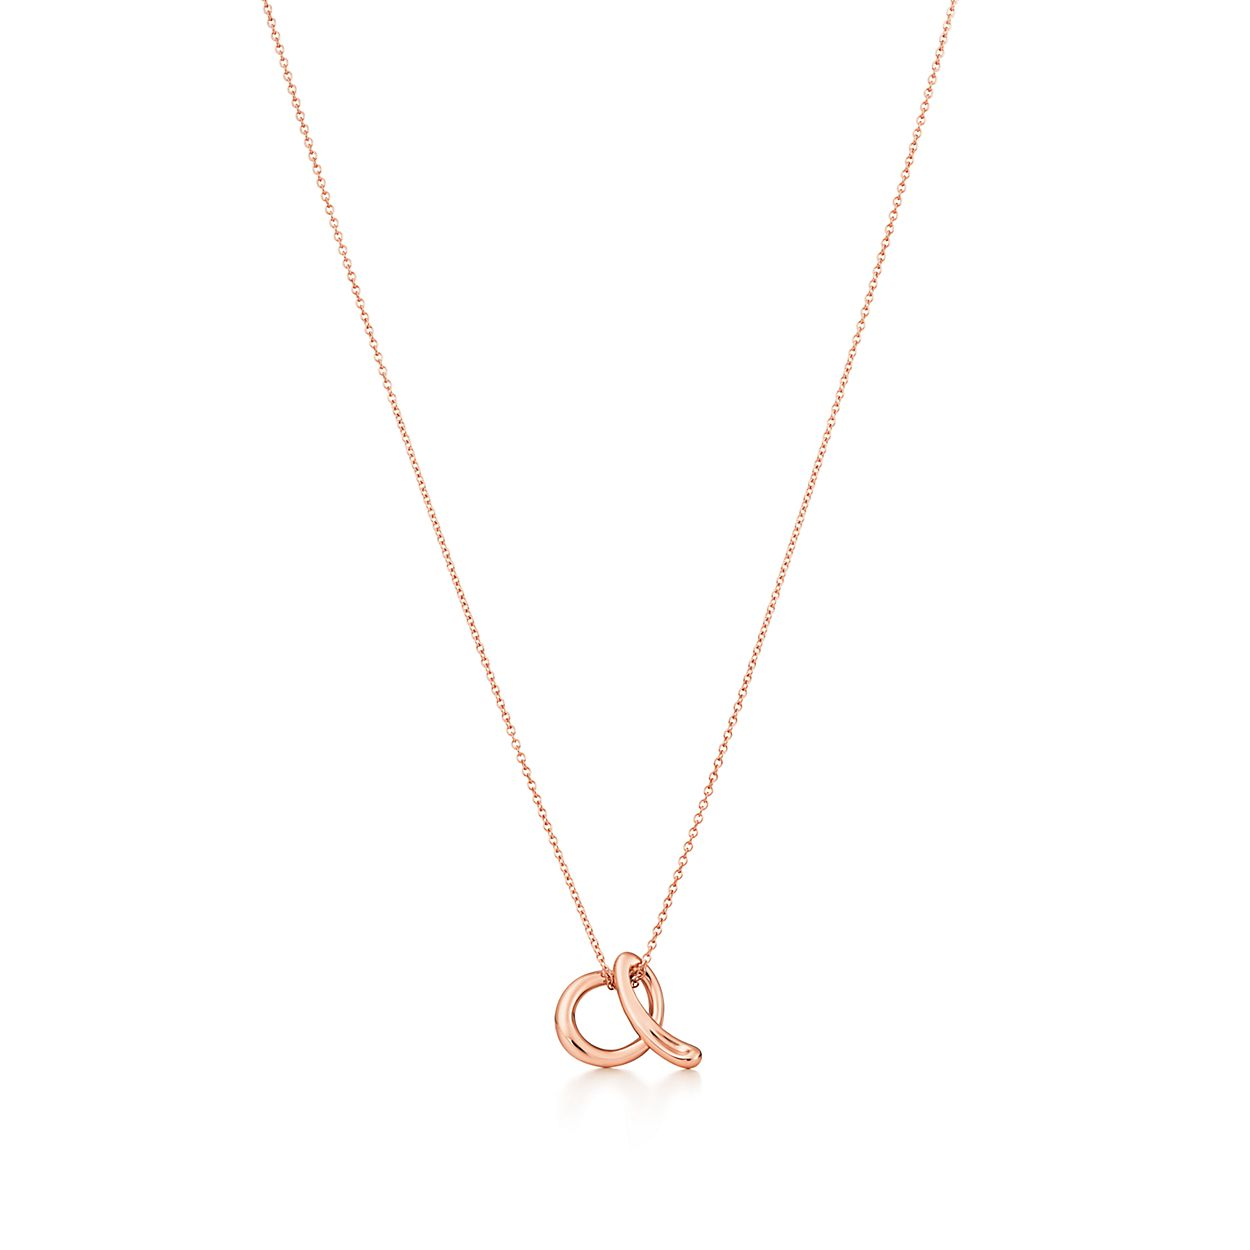 Elsa Peretti Alphabet pendant in 18k rose gold Letters A-Z available - Size E Tiffany & Co. NdFYkTly0d